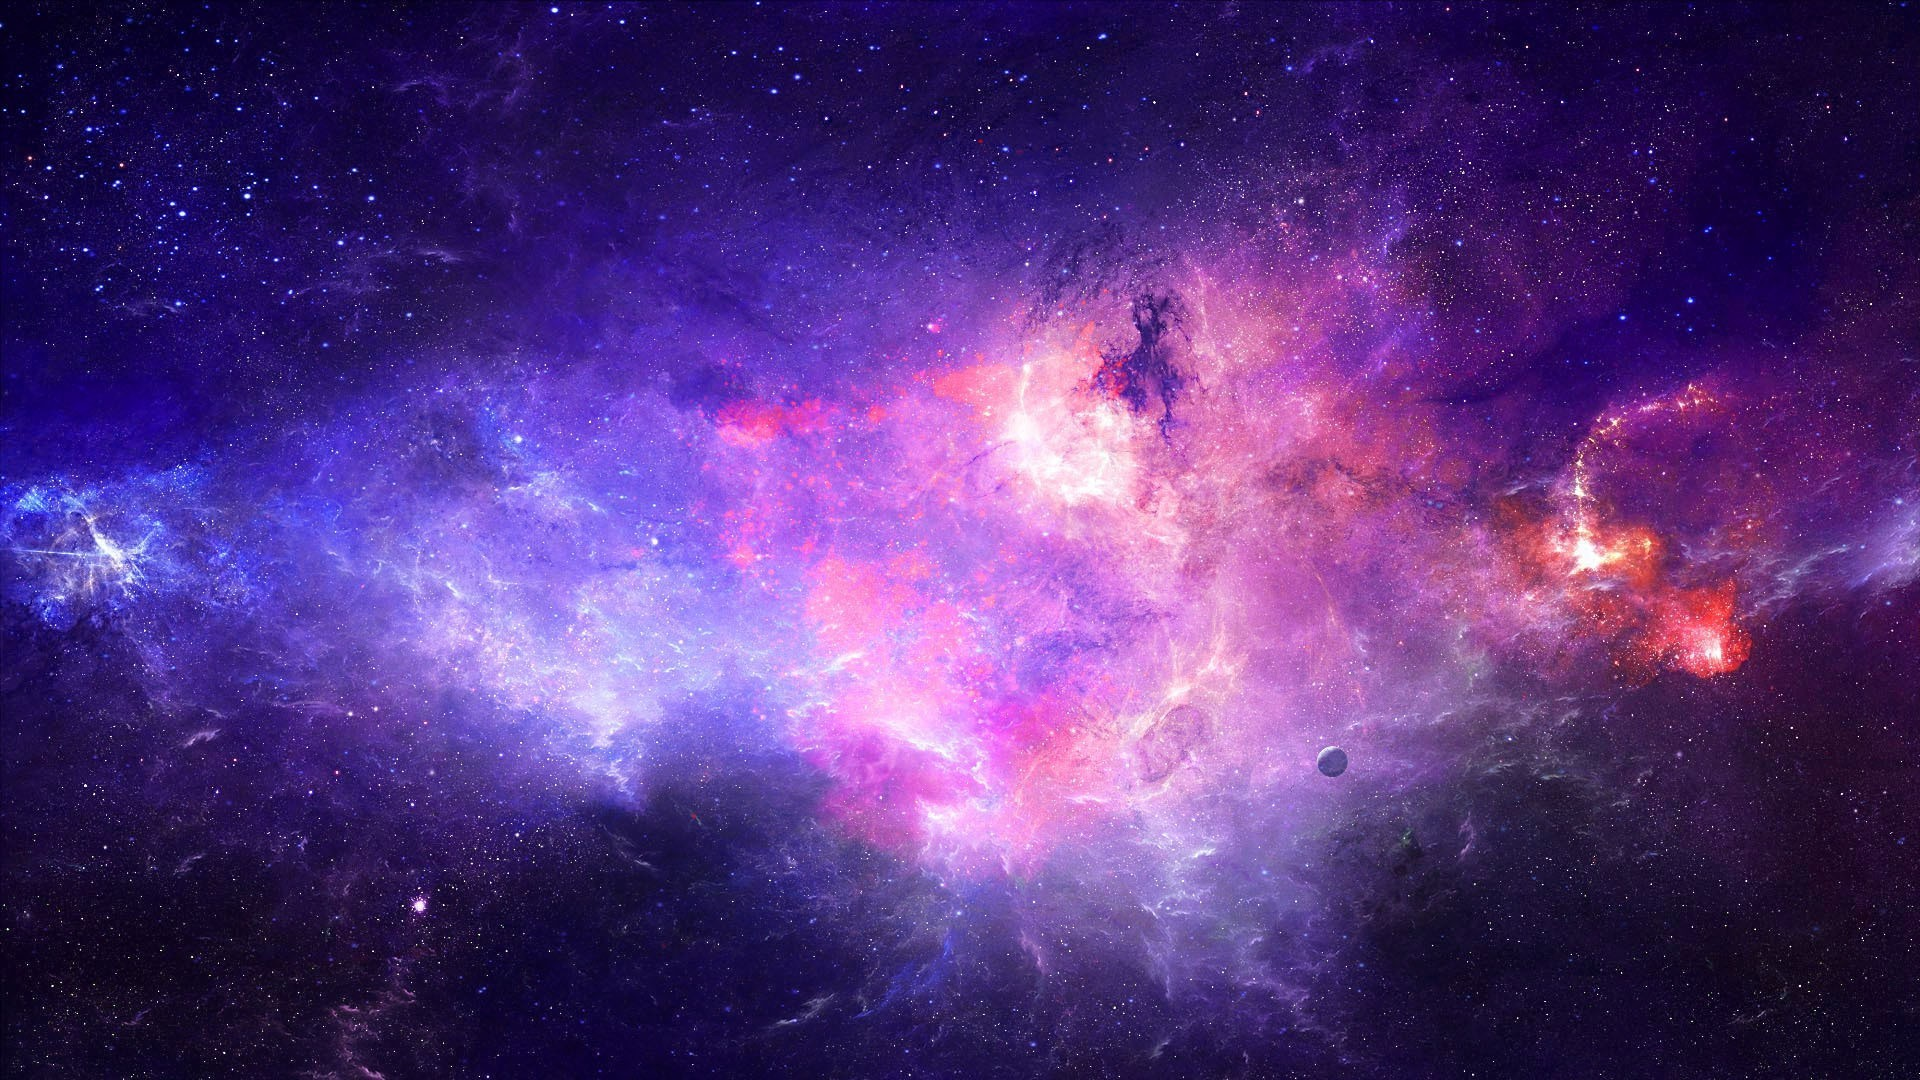 1920x1080 Colorful Galaxy Wallpaper 1080p As Wallpaper HD